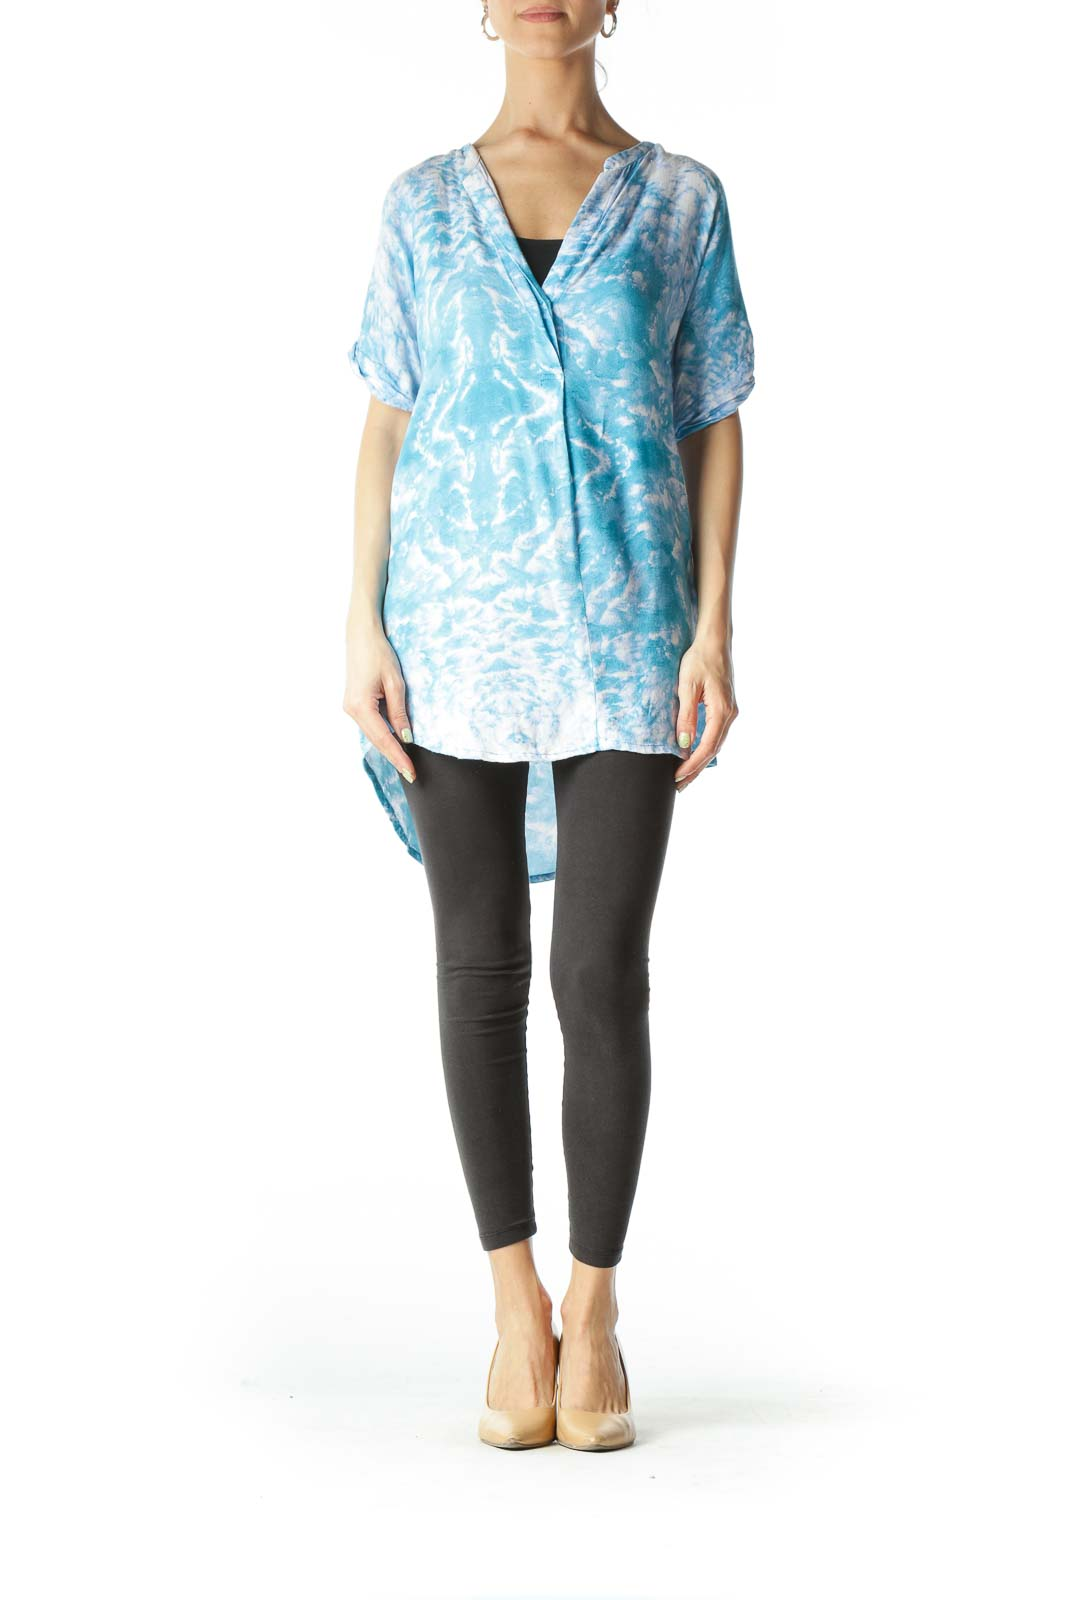 Blue and White Tie-Dye Patterned Asymmetrical-Fold Blouse